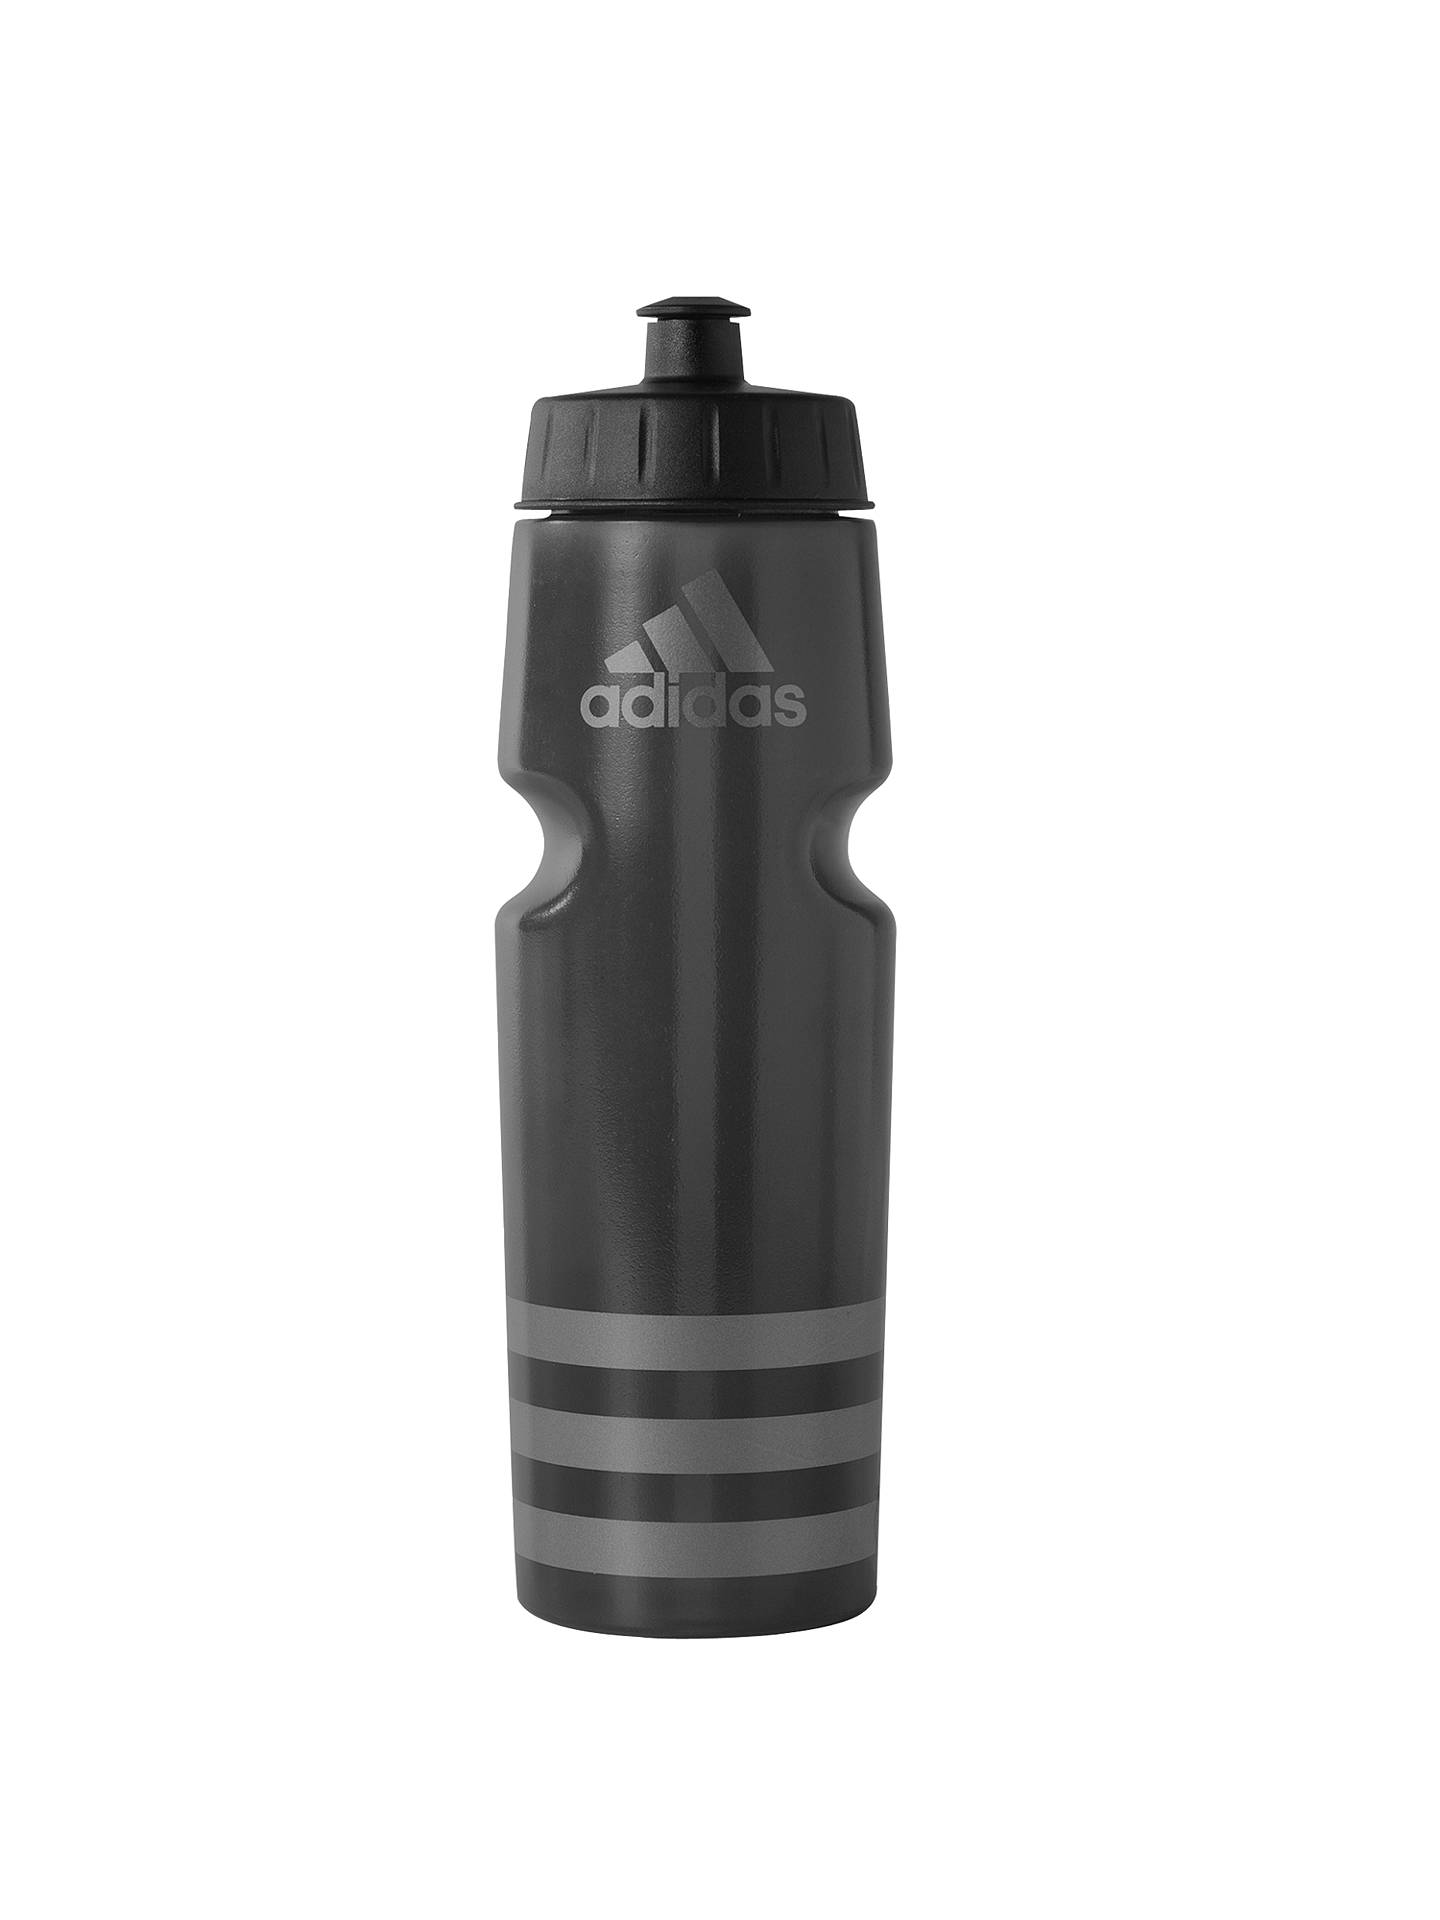 adidas Accessories at